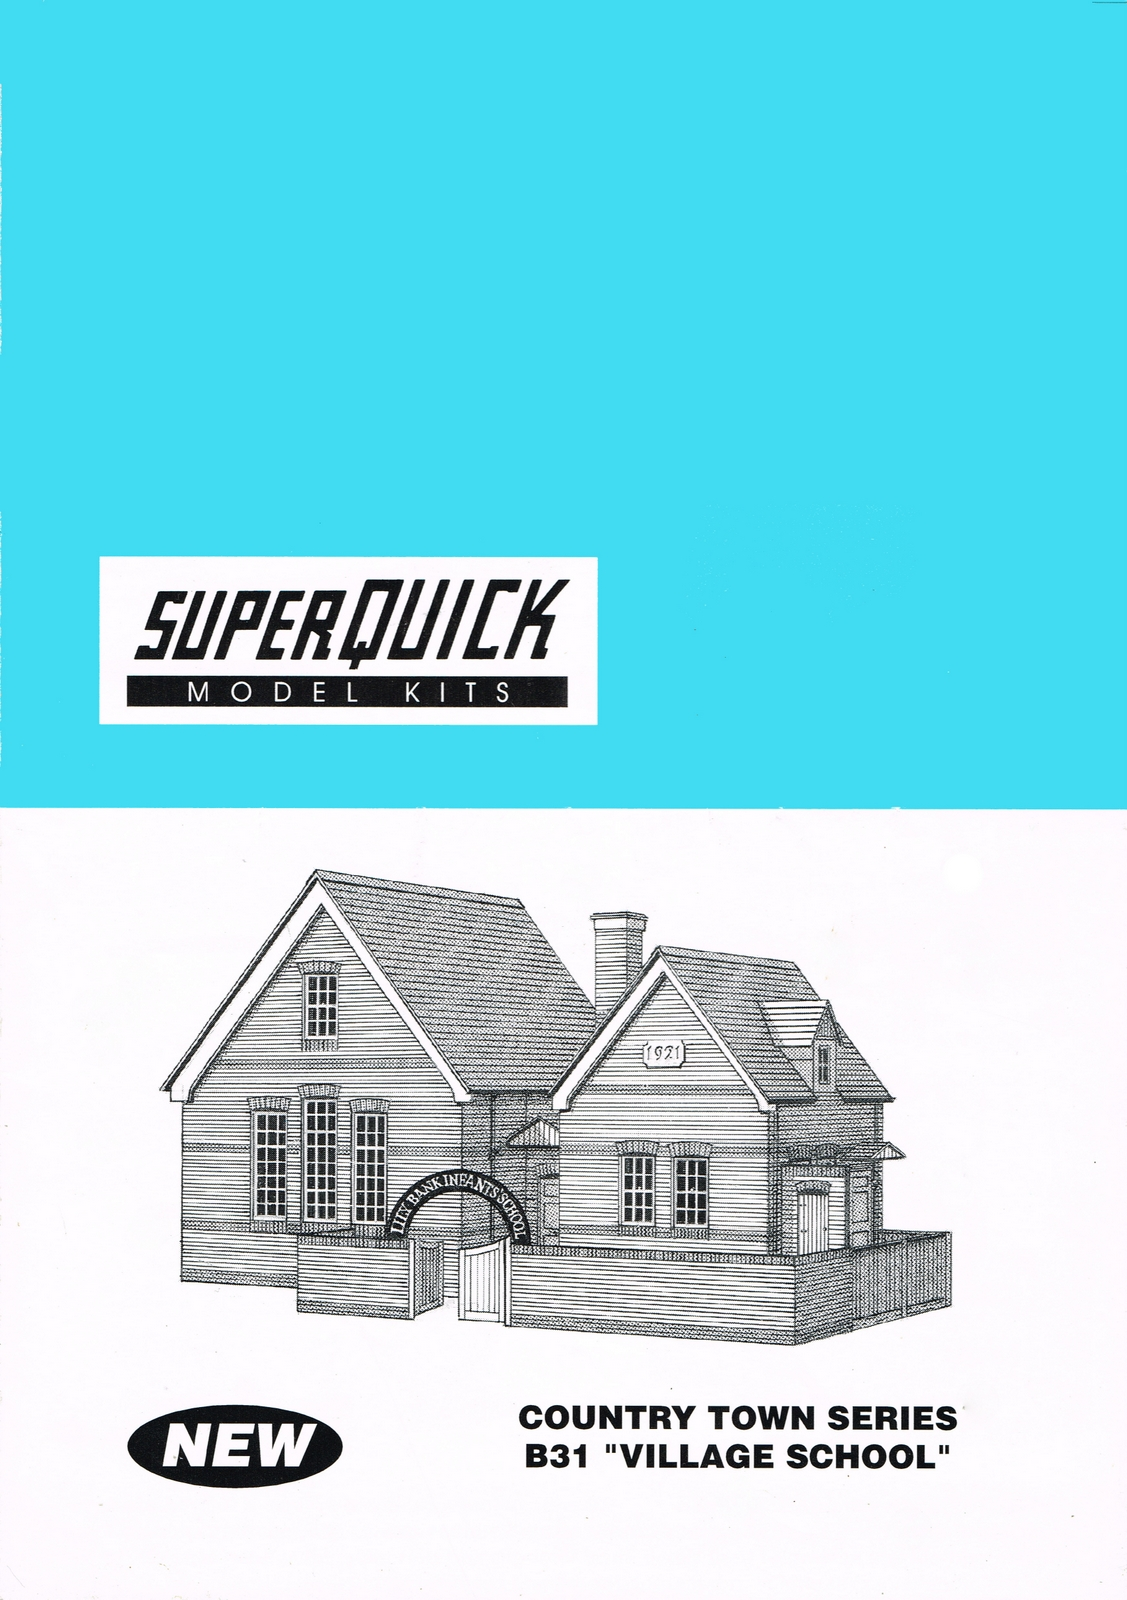 Category:Superquick Model Kits - The Brighton Toy and Model Index